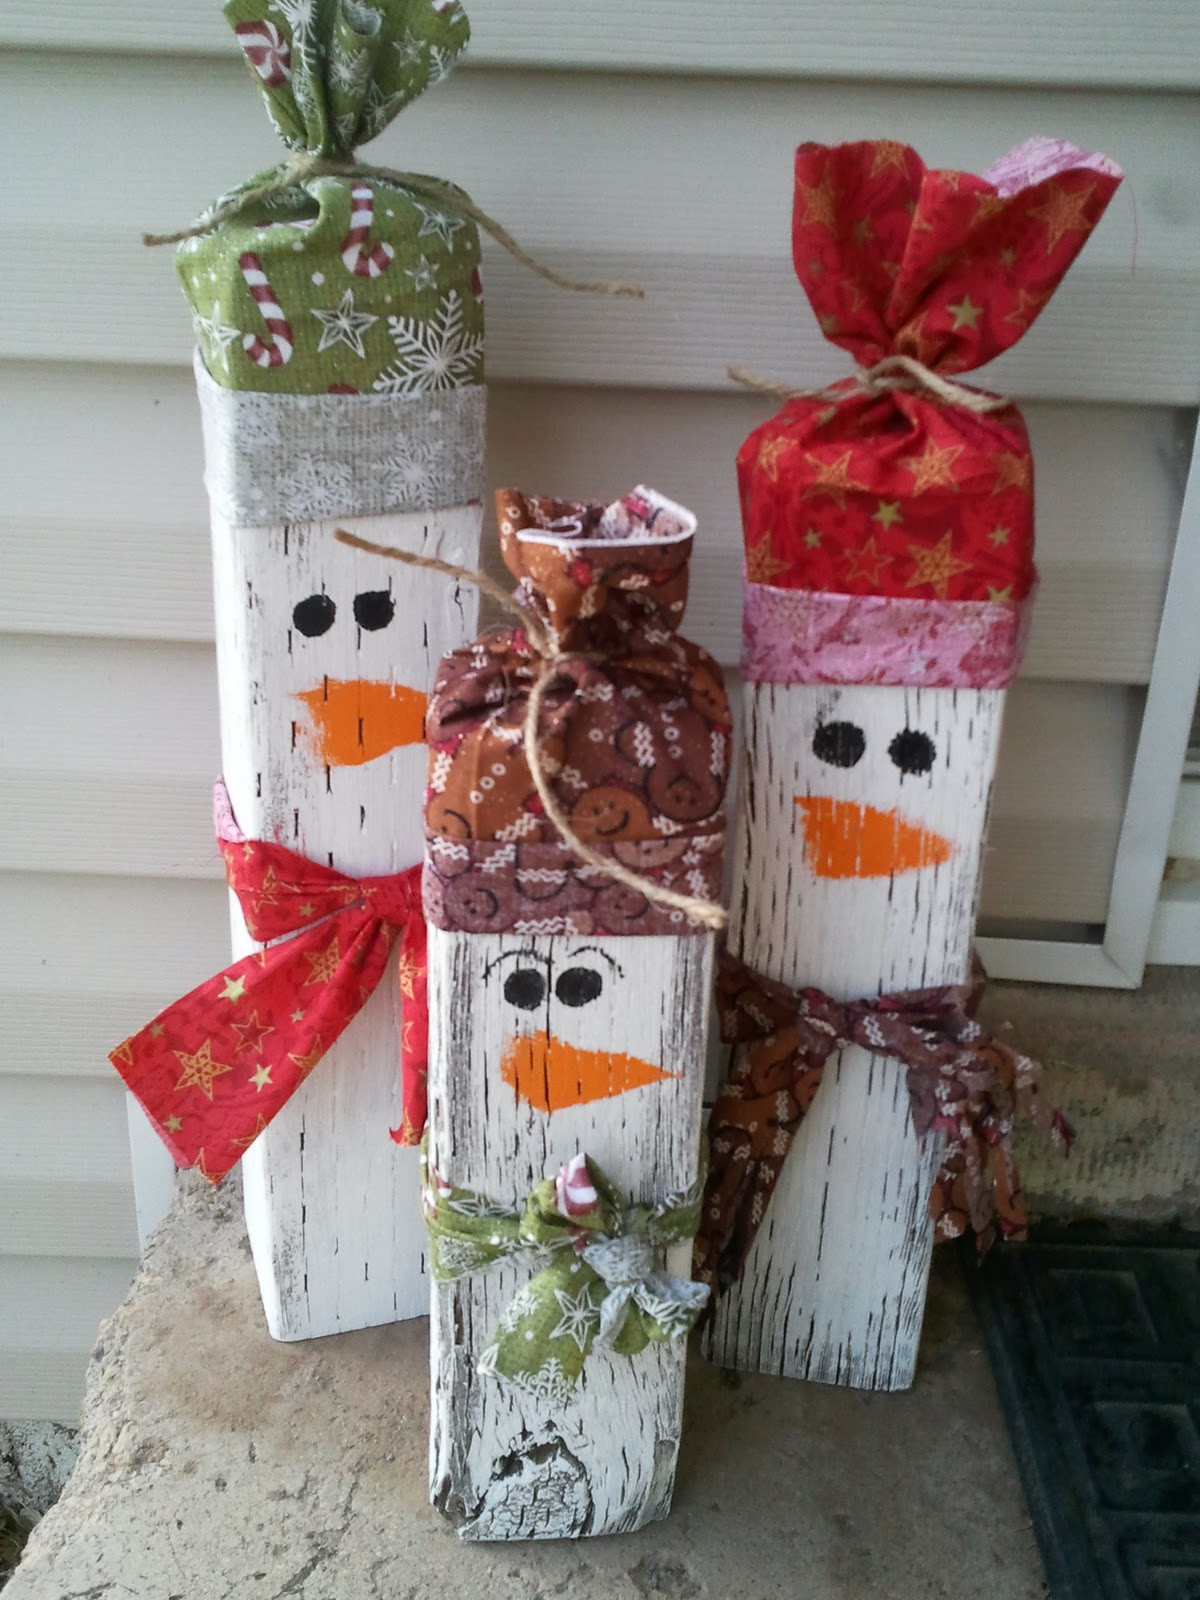 Best ideas about DIY Christmas Decor Ideas . Save or Pin Always Something 10 DIY Christmas Decor Ideas Now.